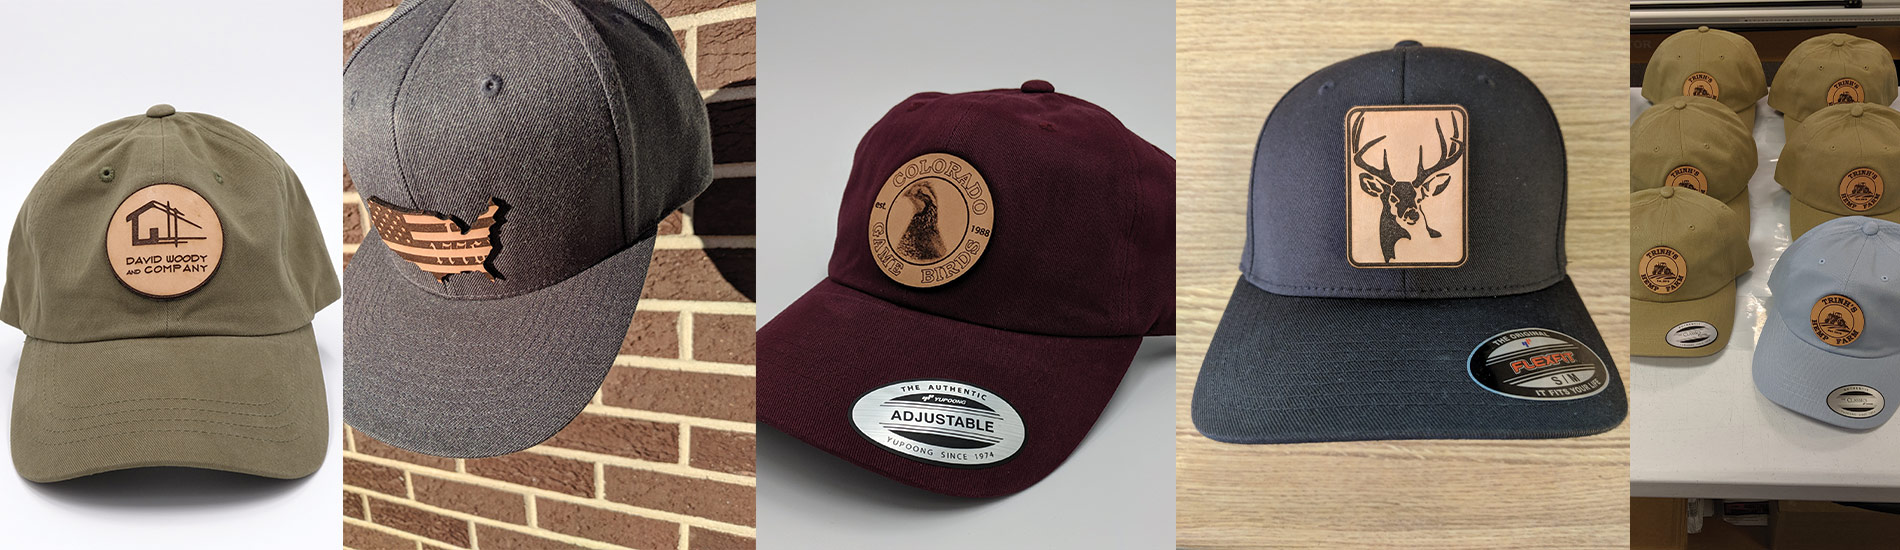 Custom Leather Patch Hats Embroidery Hats